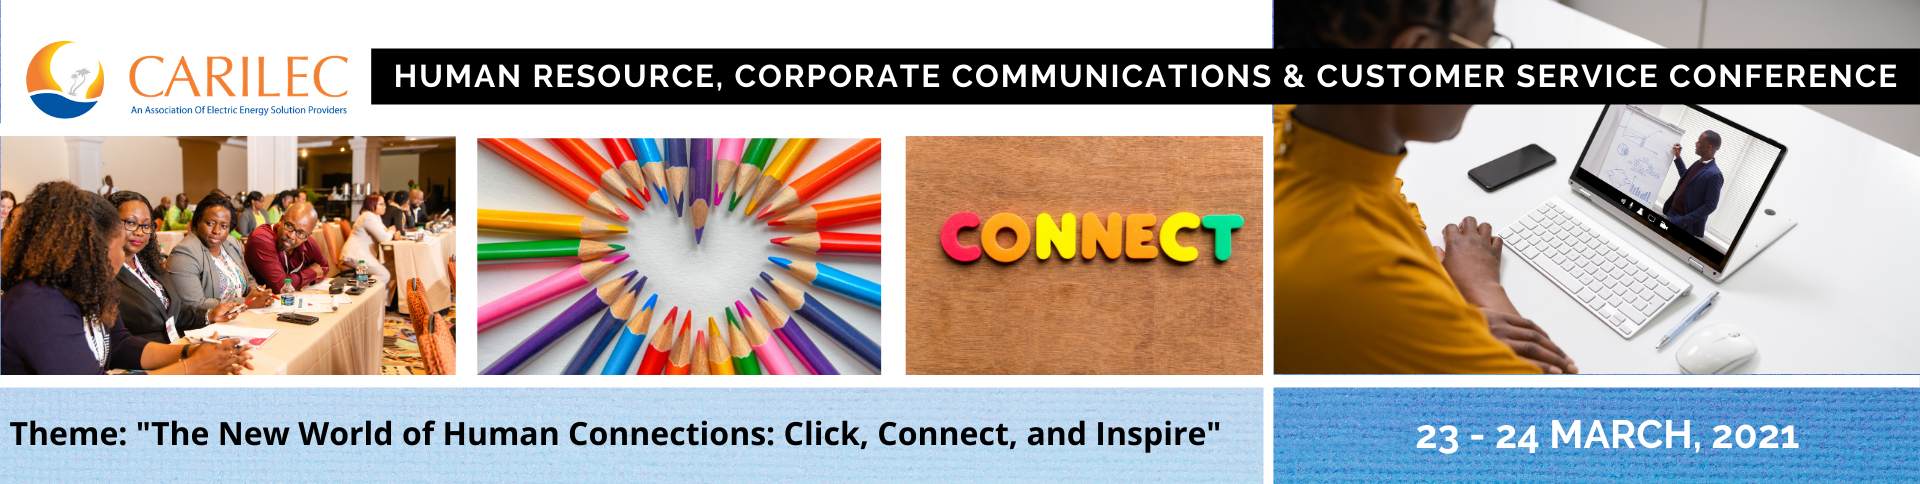 HR, Communications and Customer Service Conference